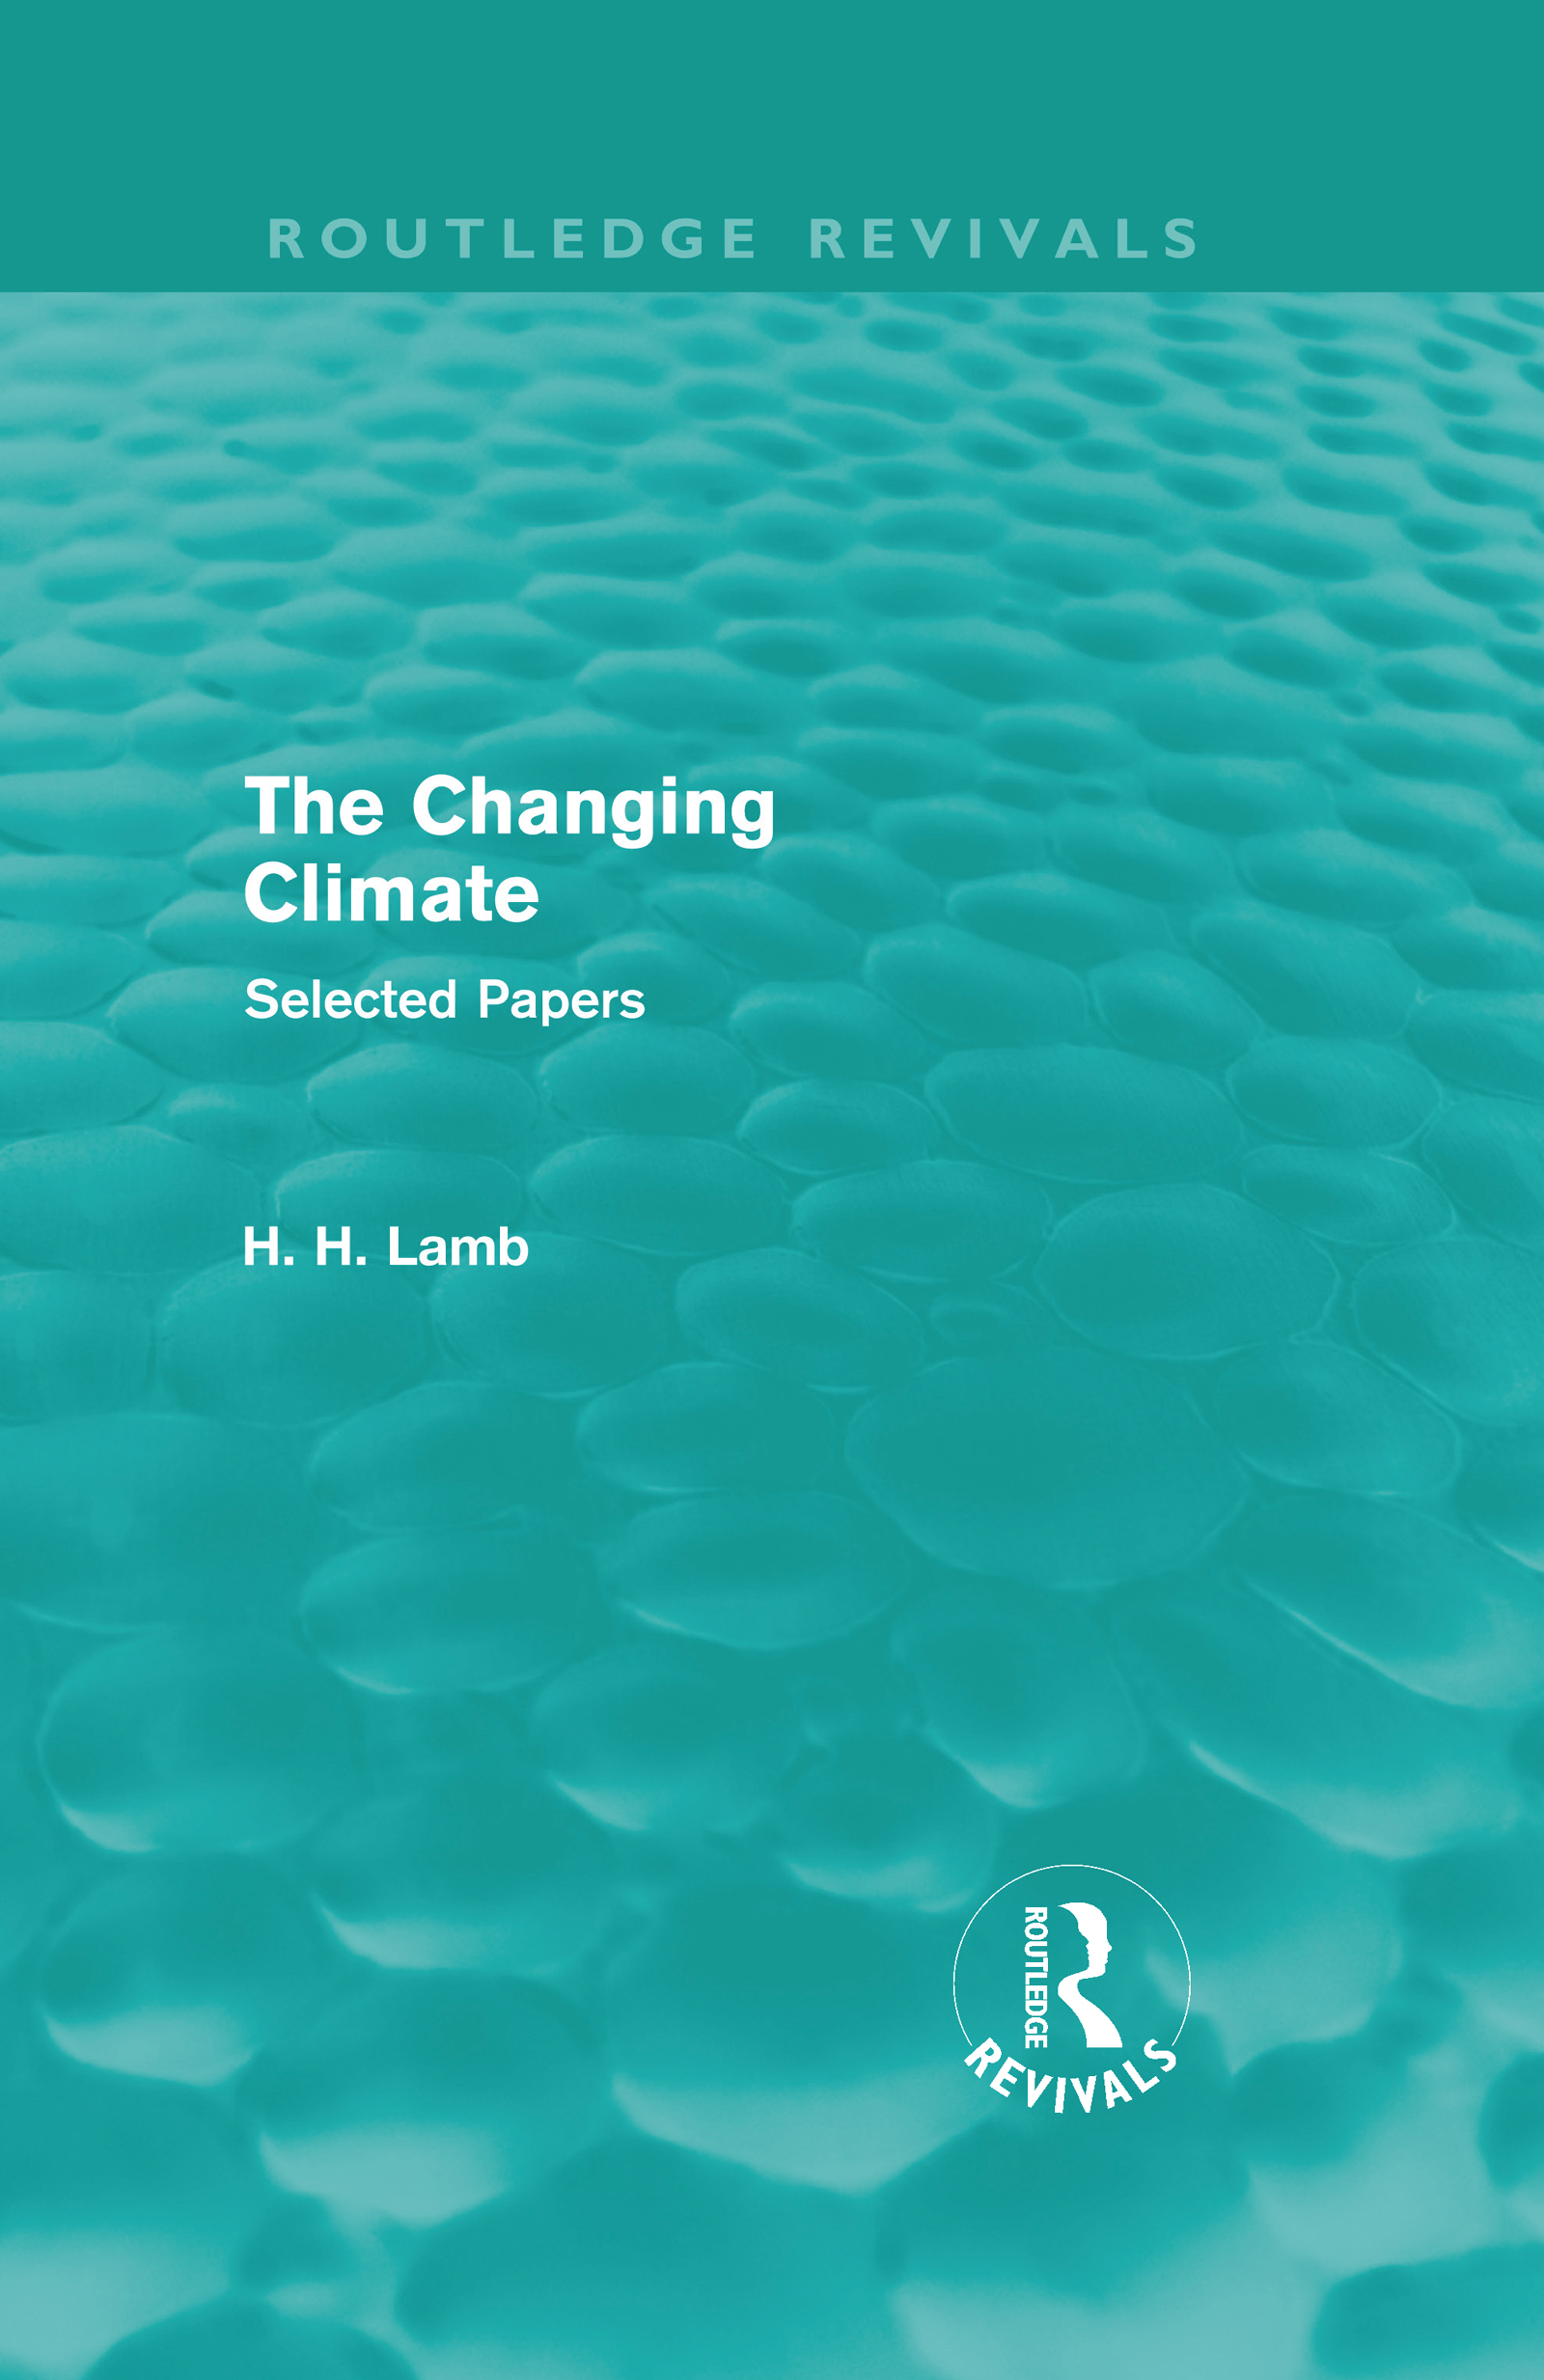 The Changing Climate (Routledge Revivals): Selected Papers book cover